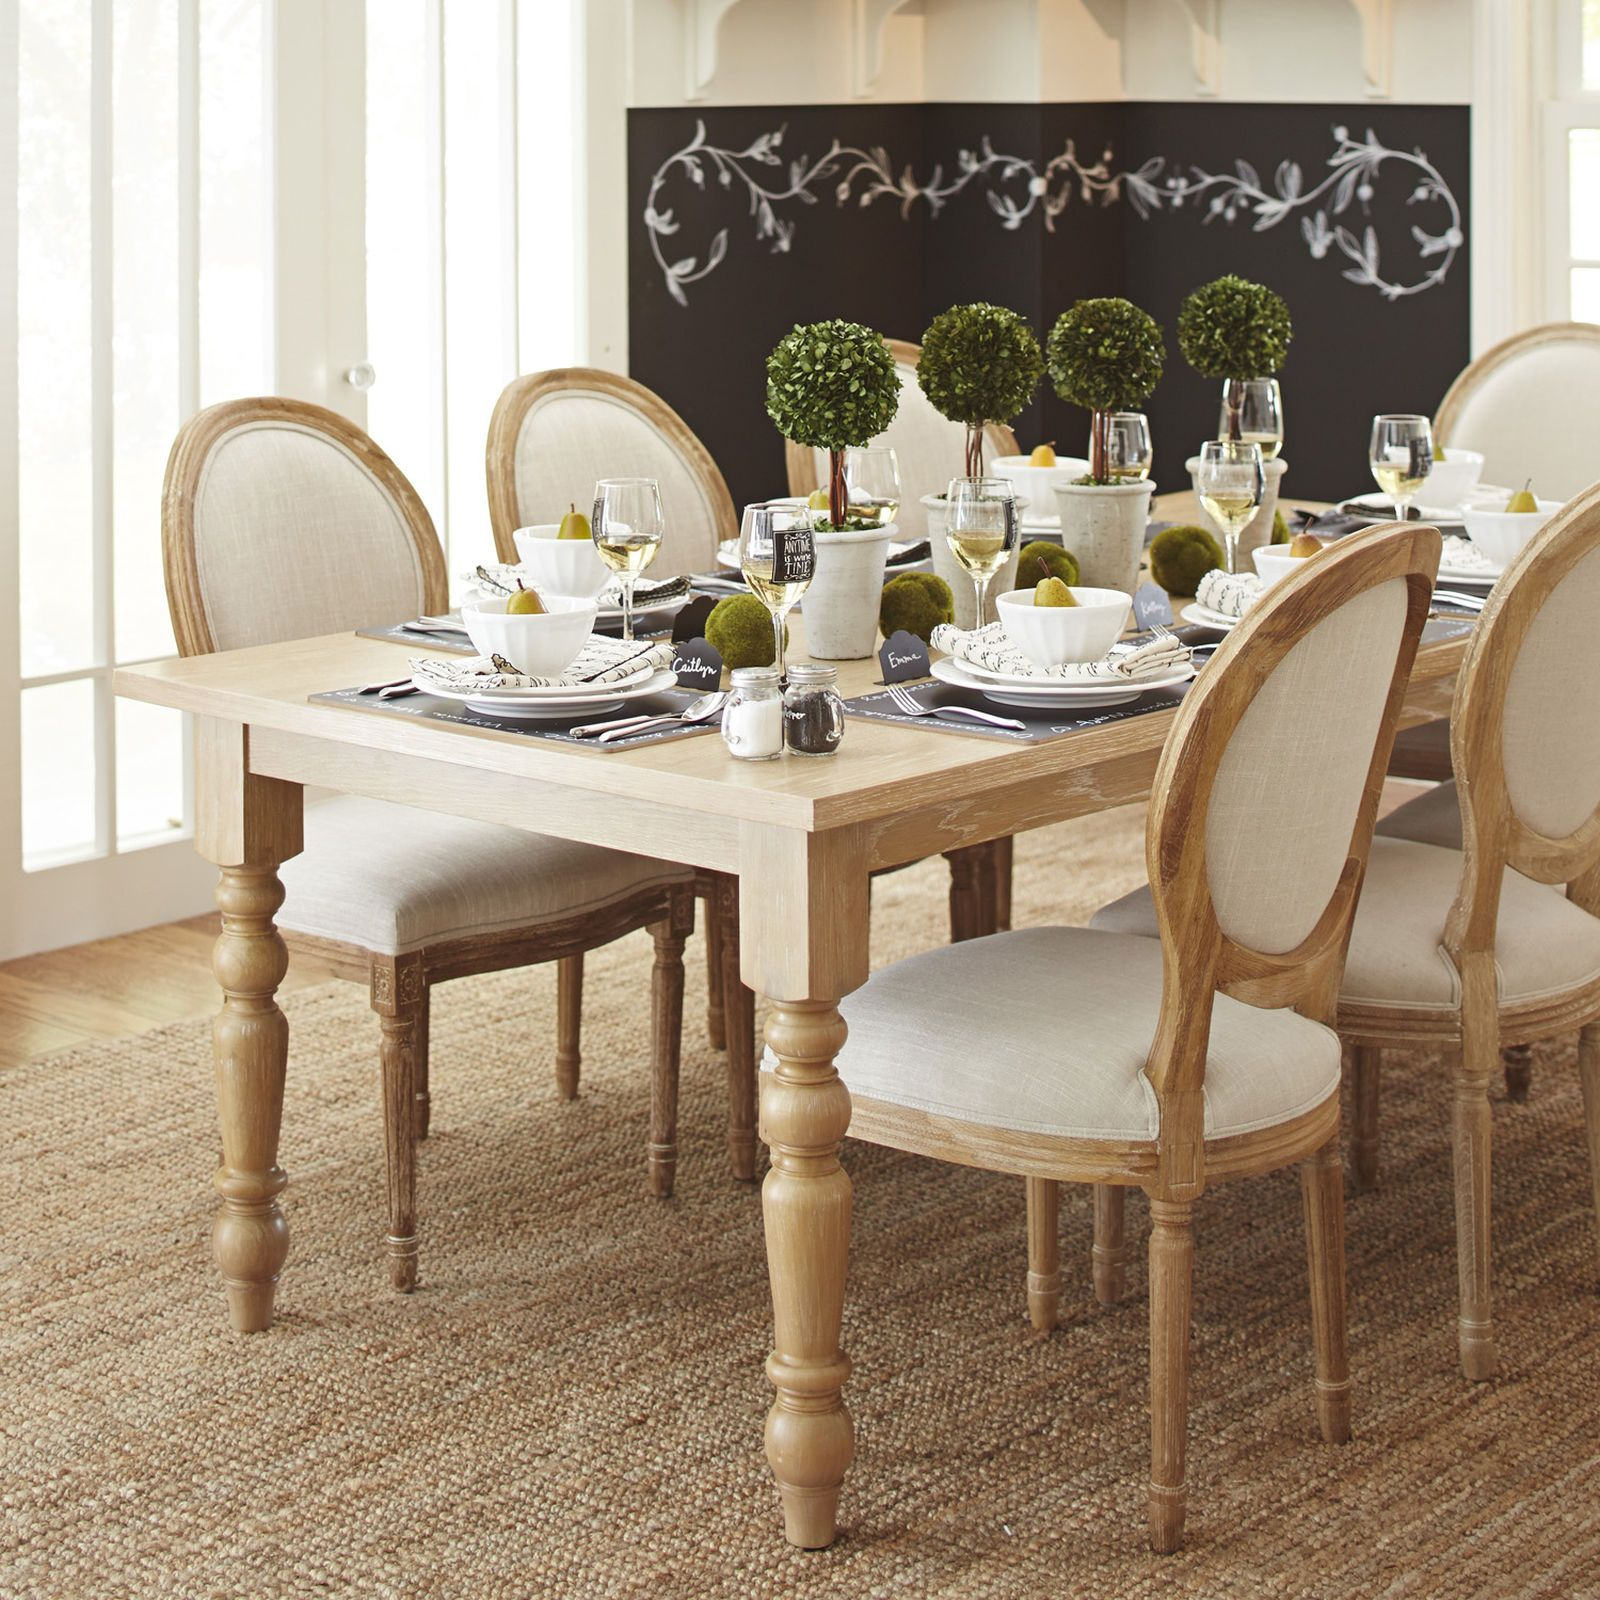 French Country Dining Set Natural Whitewash Country Dining